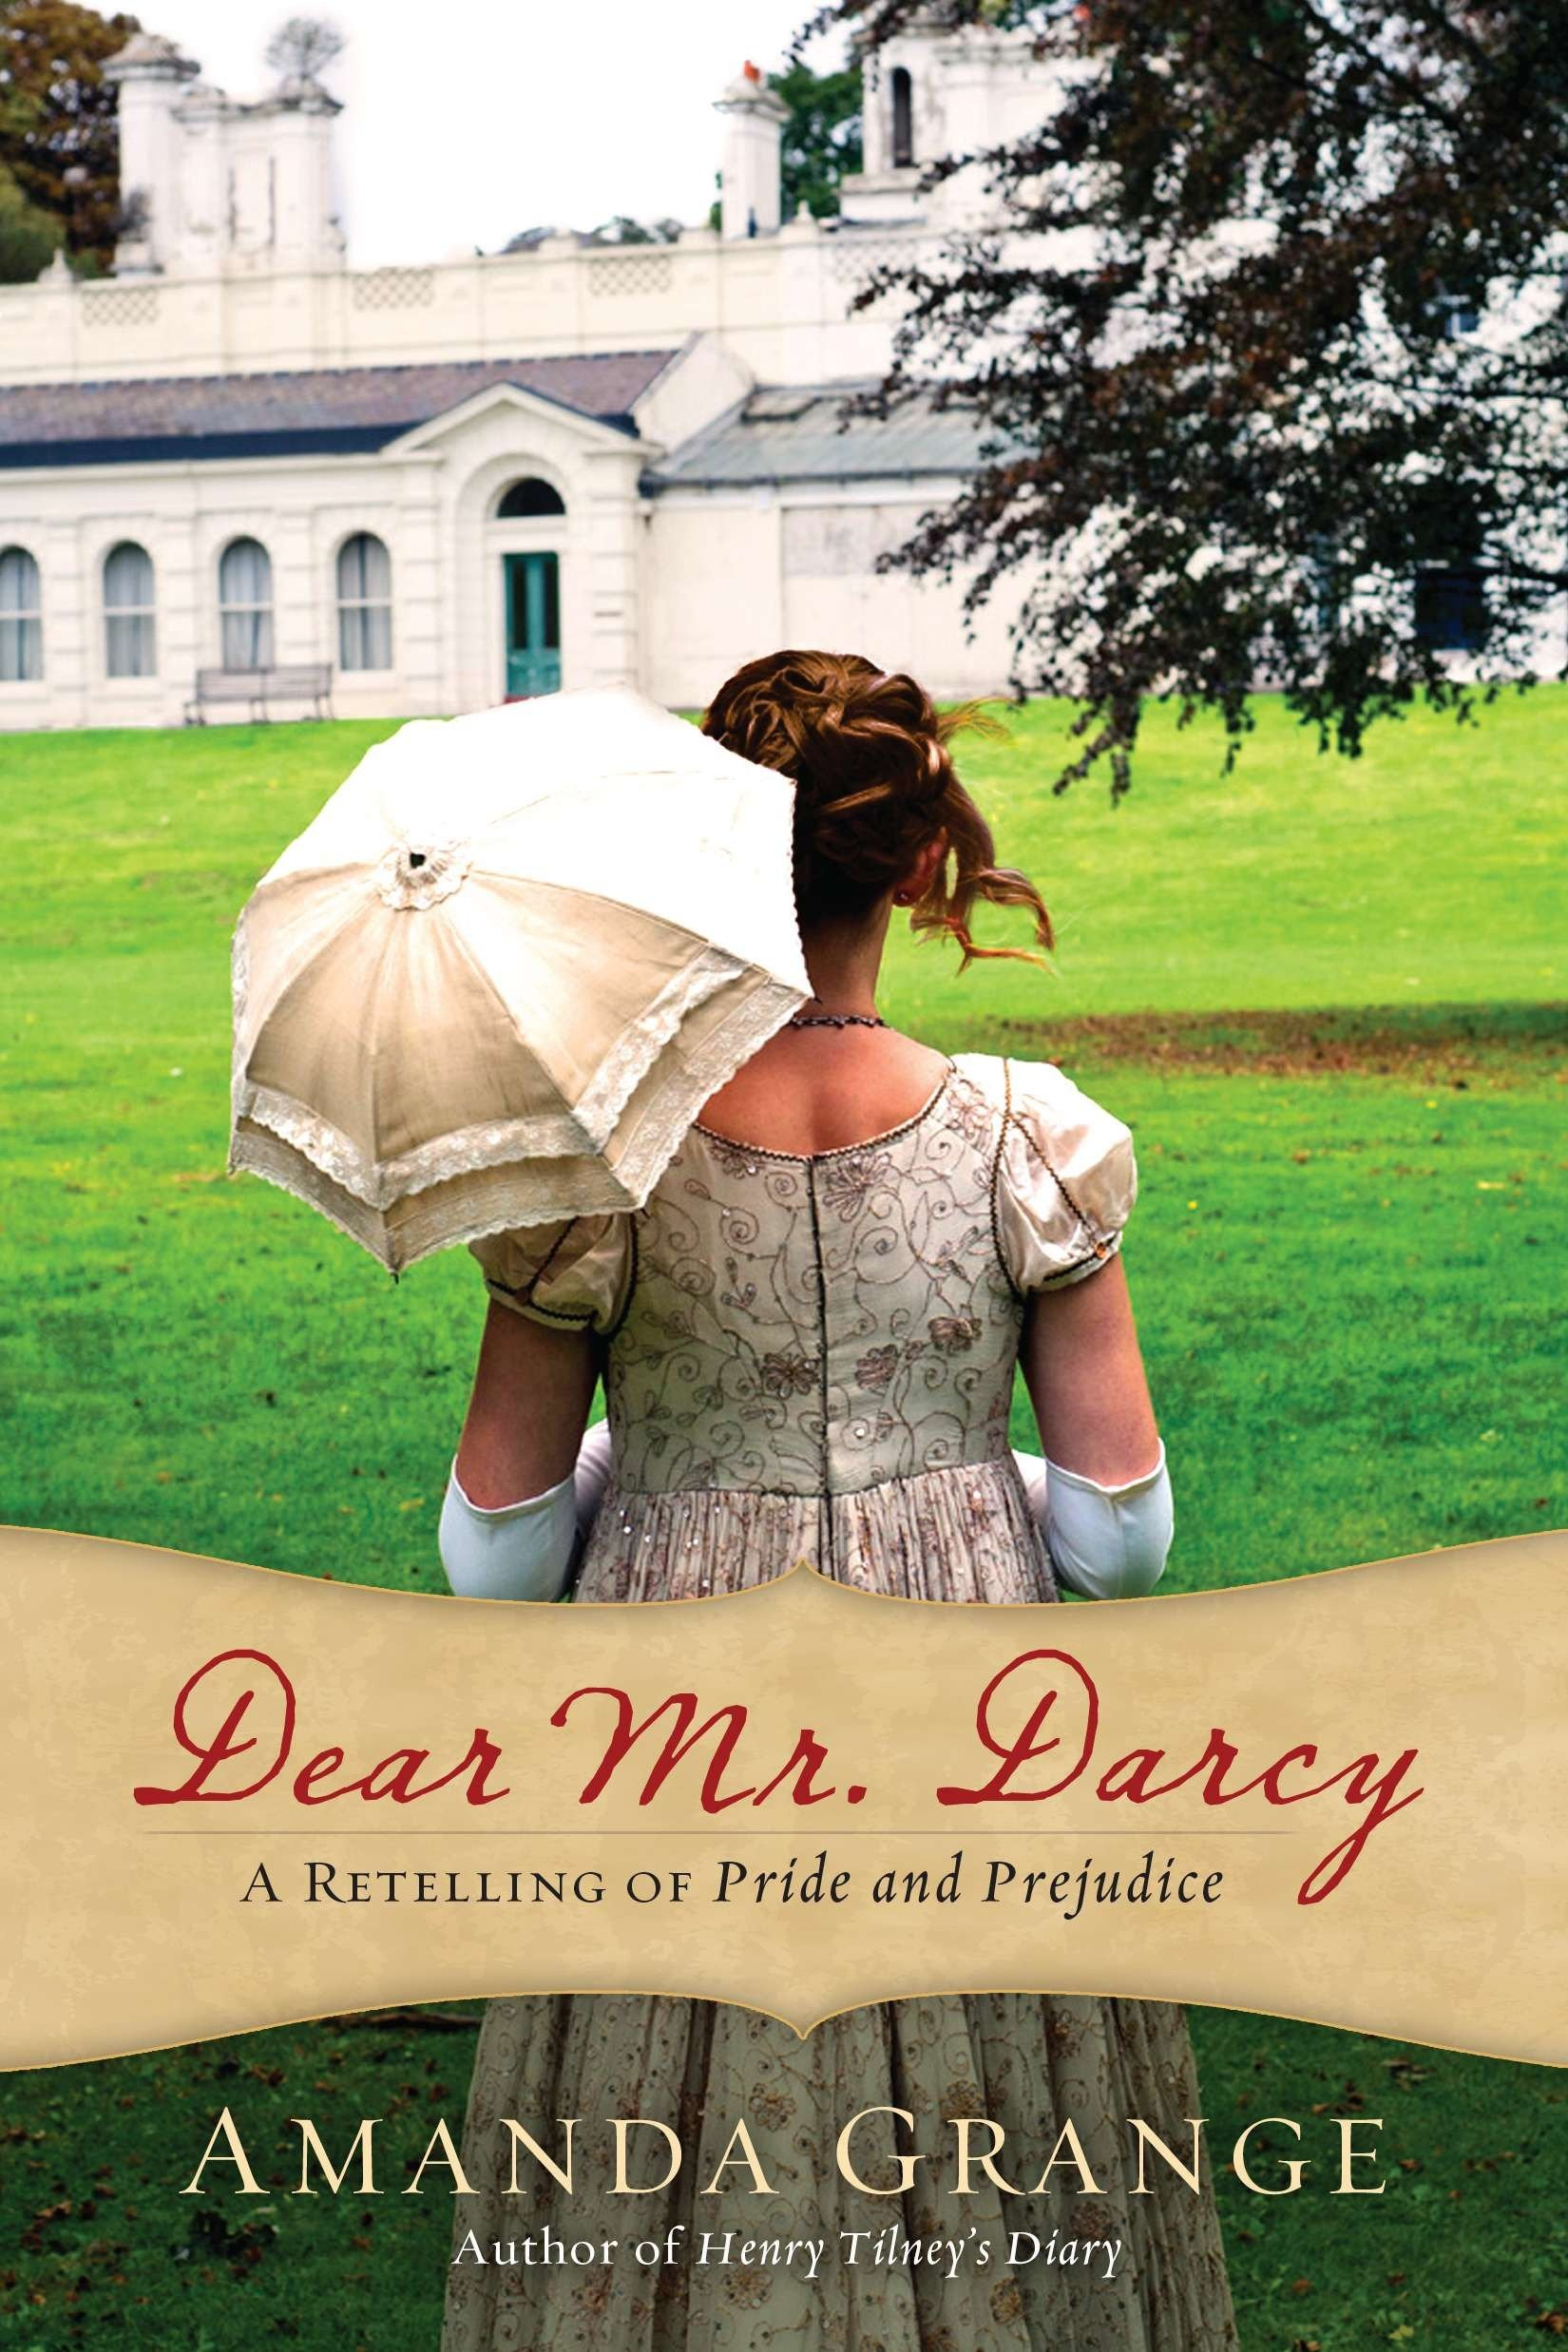 Dear mr darcy a retelling of pride and prejudice amanda grange dear mr darcy a retelling of pride and prejudice amanda grange 9780425247815 amazon books fandeluxe Gallery